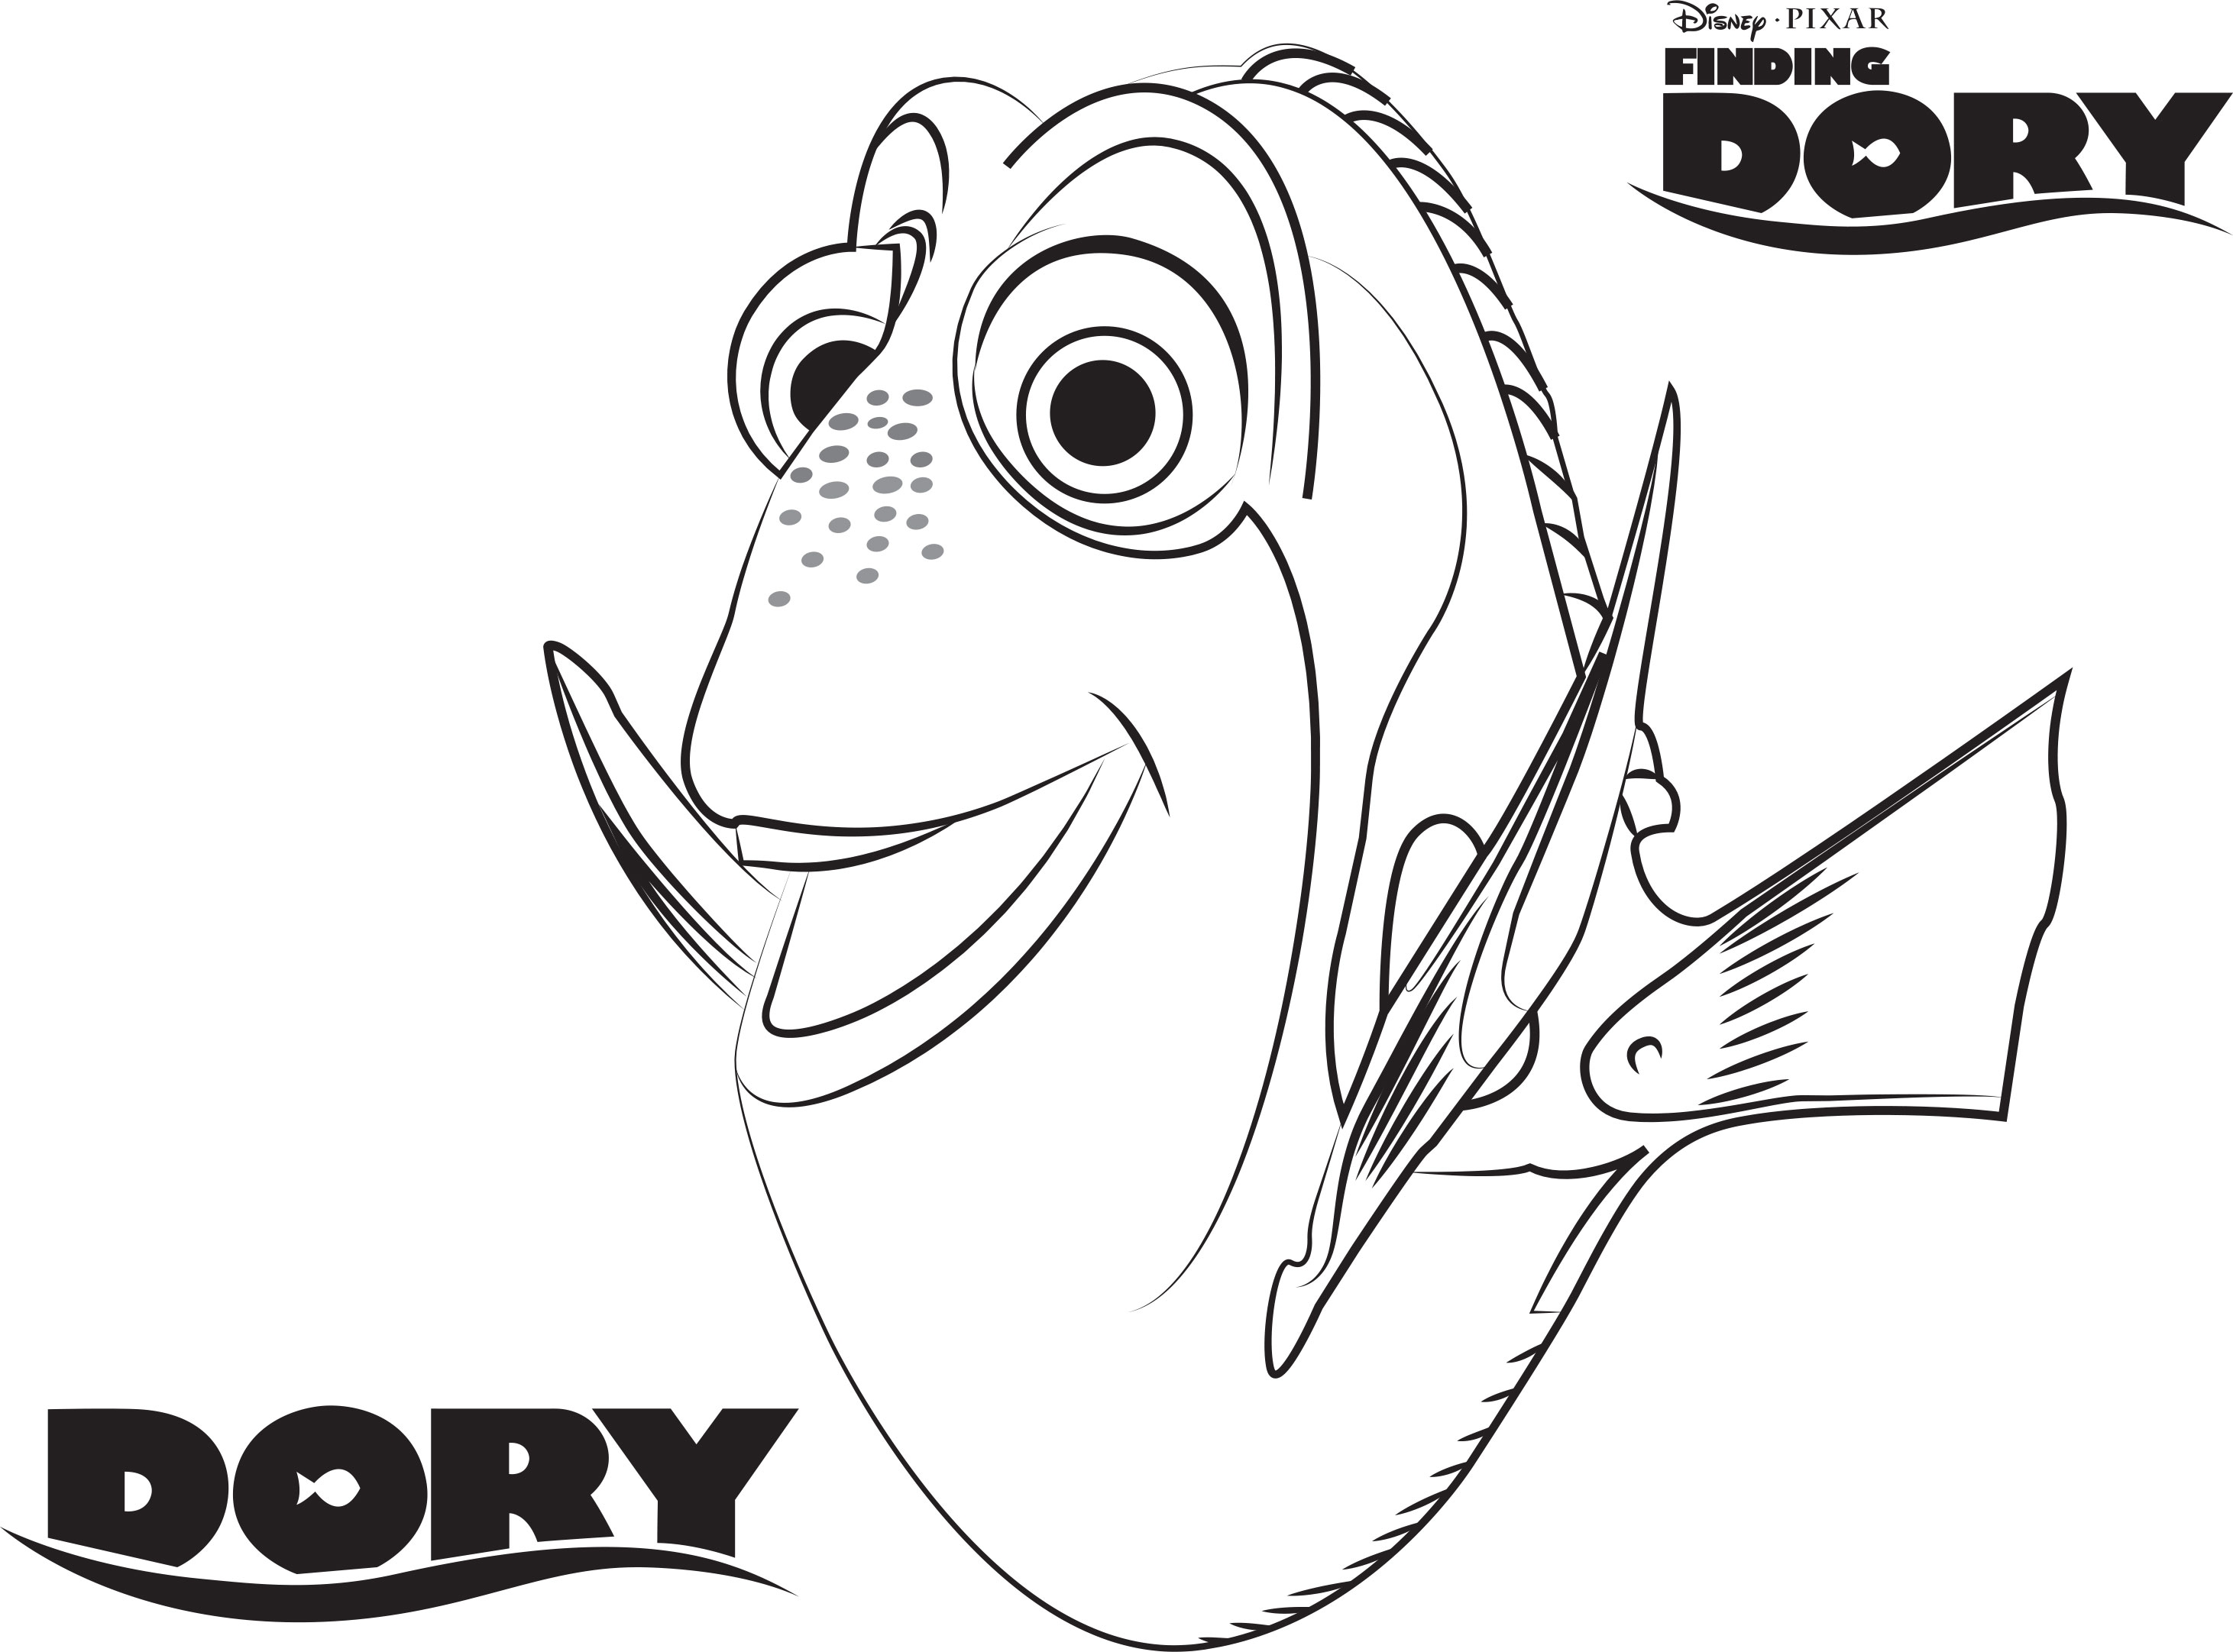 Dory Coloring Pages - Dory Coloring Pages Best Coloring Pages for Kids